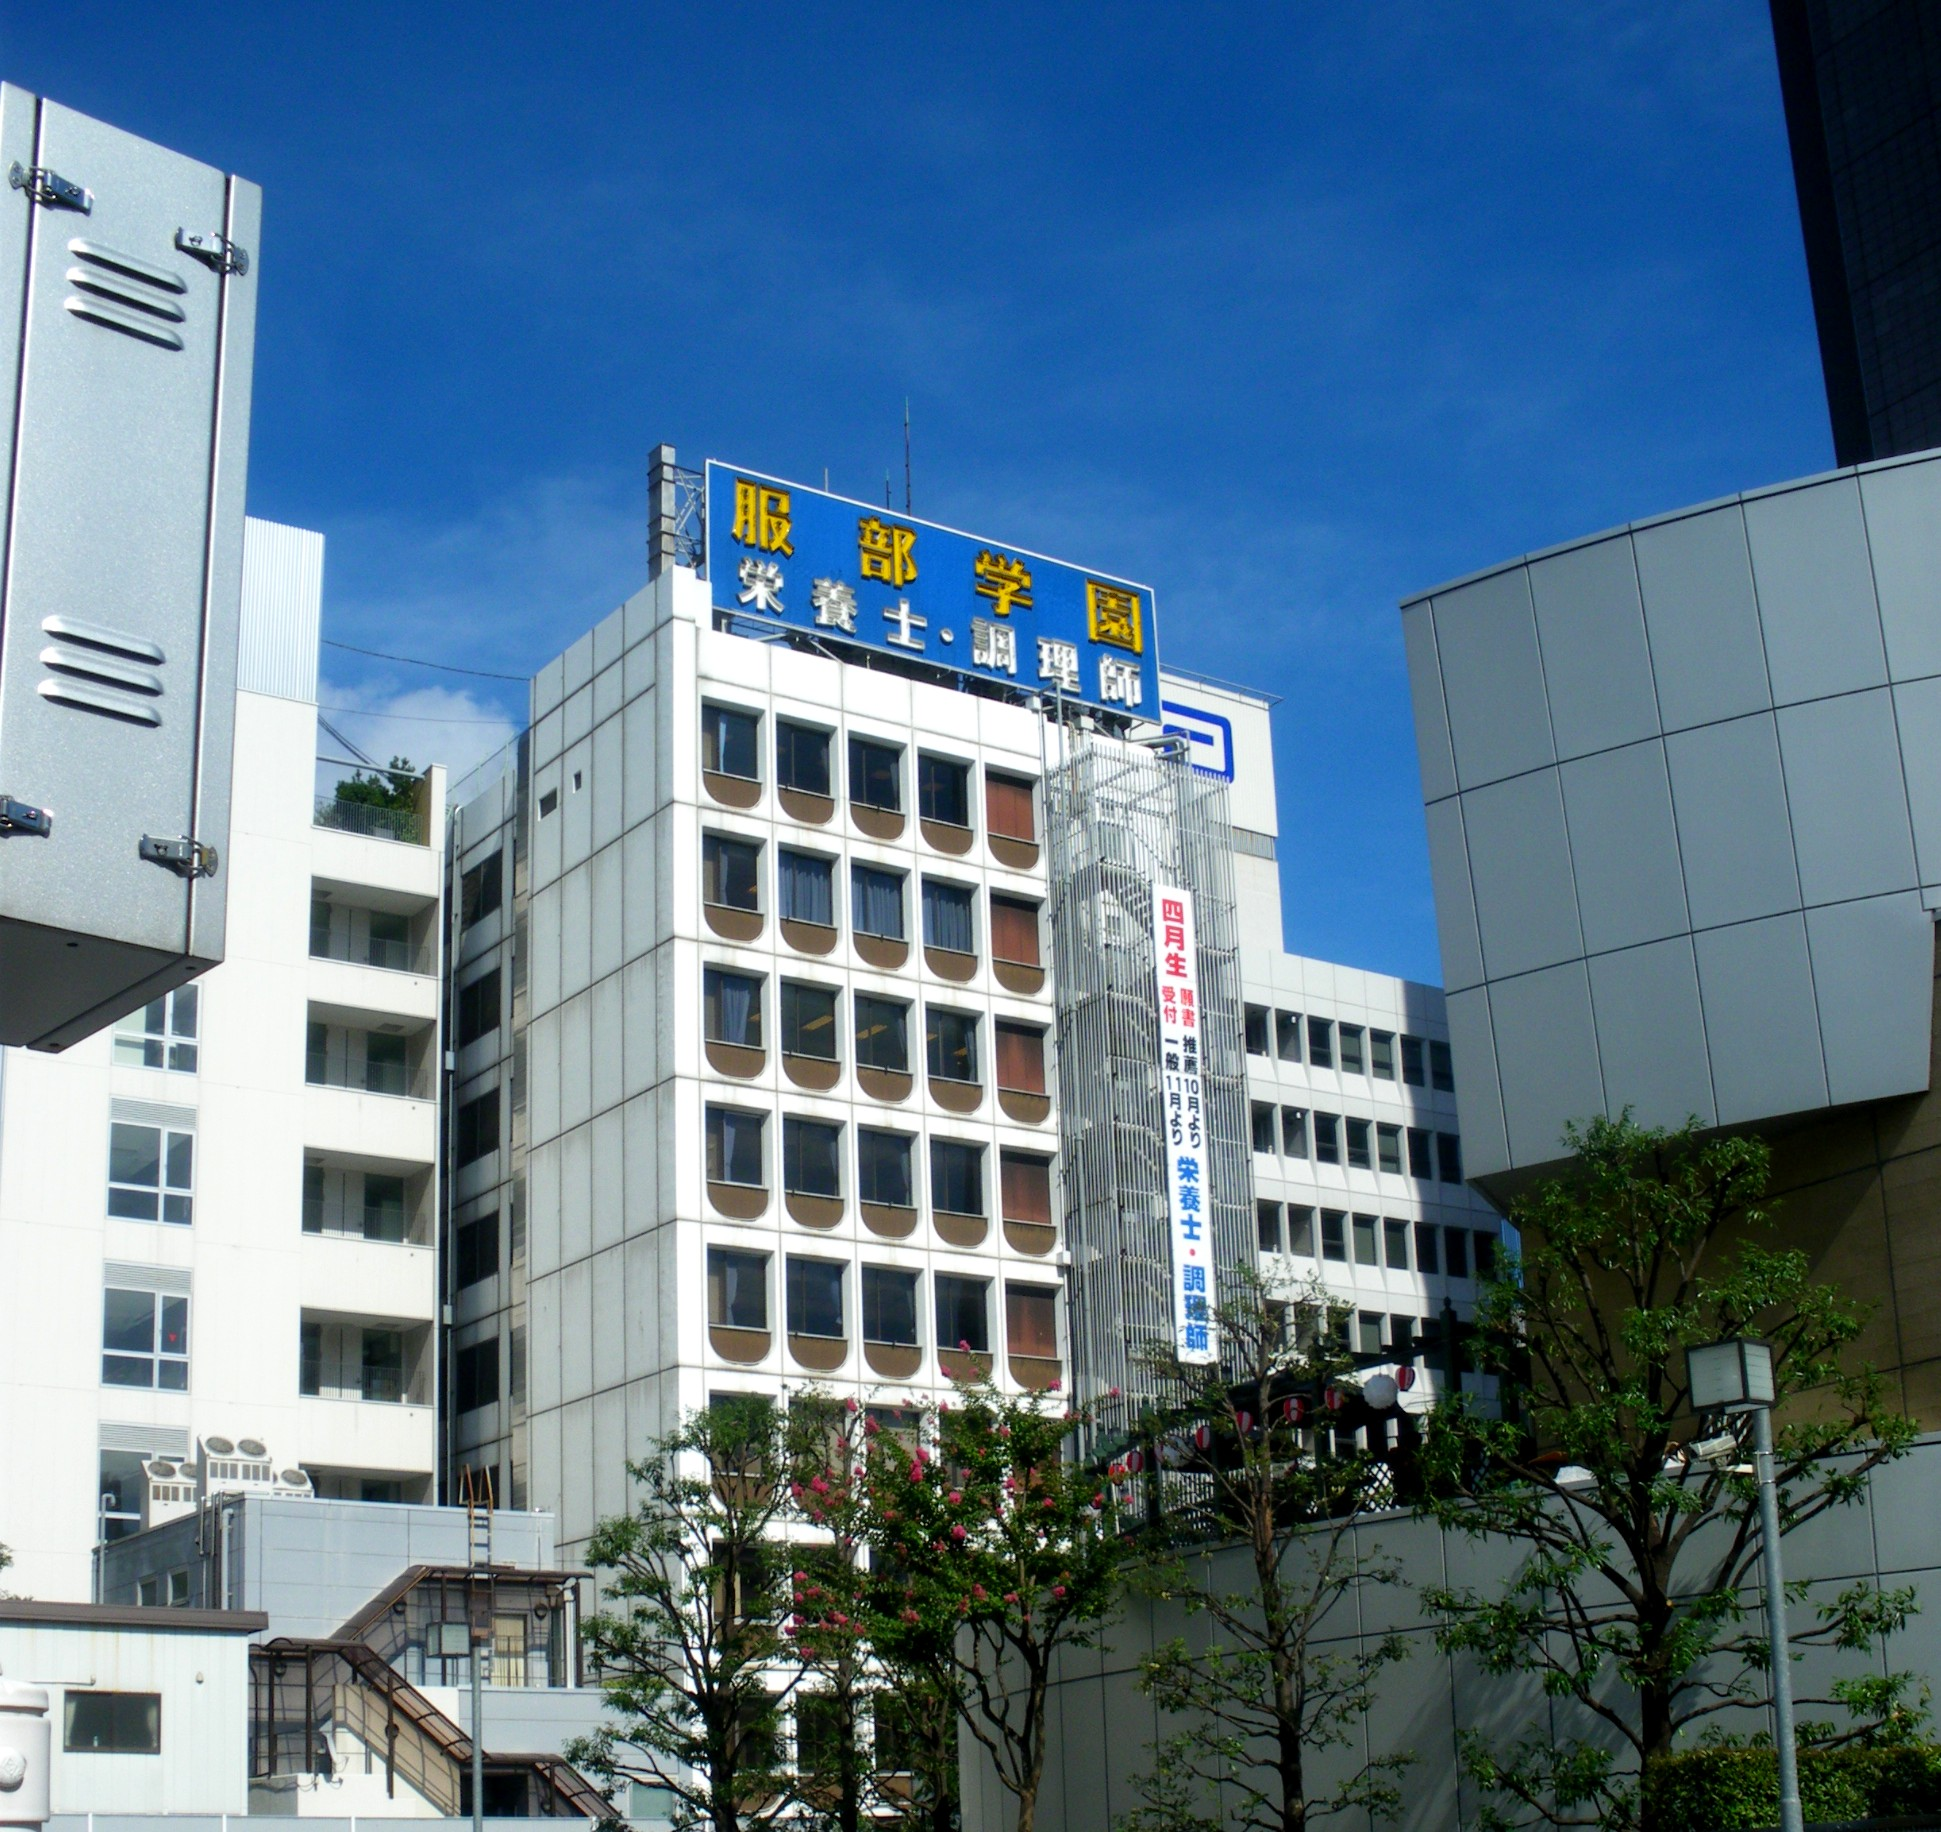 File:Hattori nutrition college sendagaya.JPG - Wikipedia, the free ...